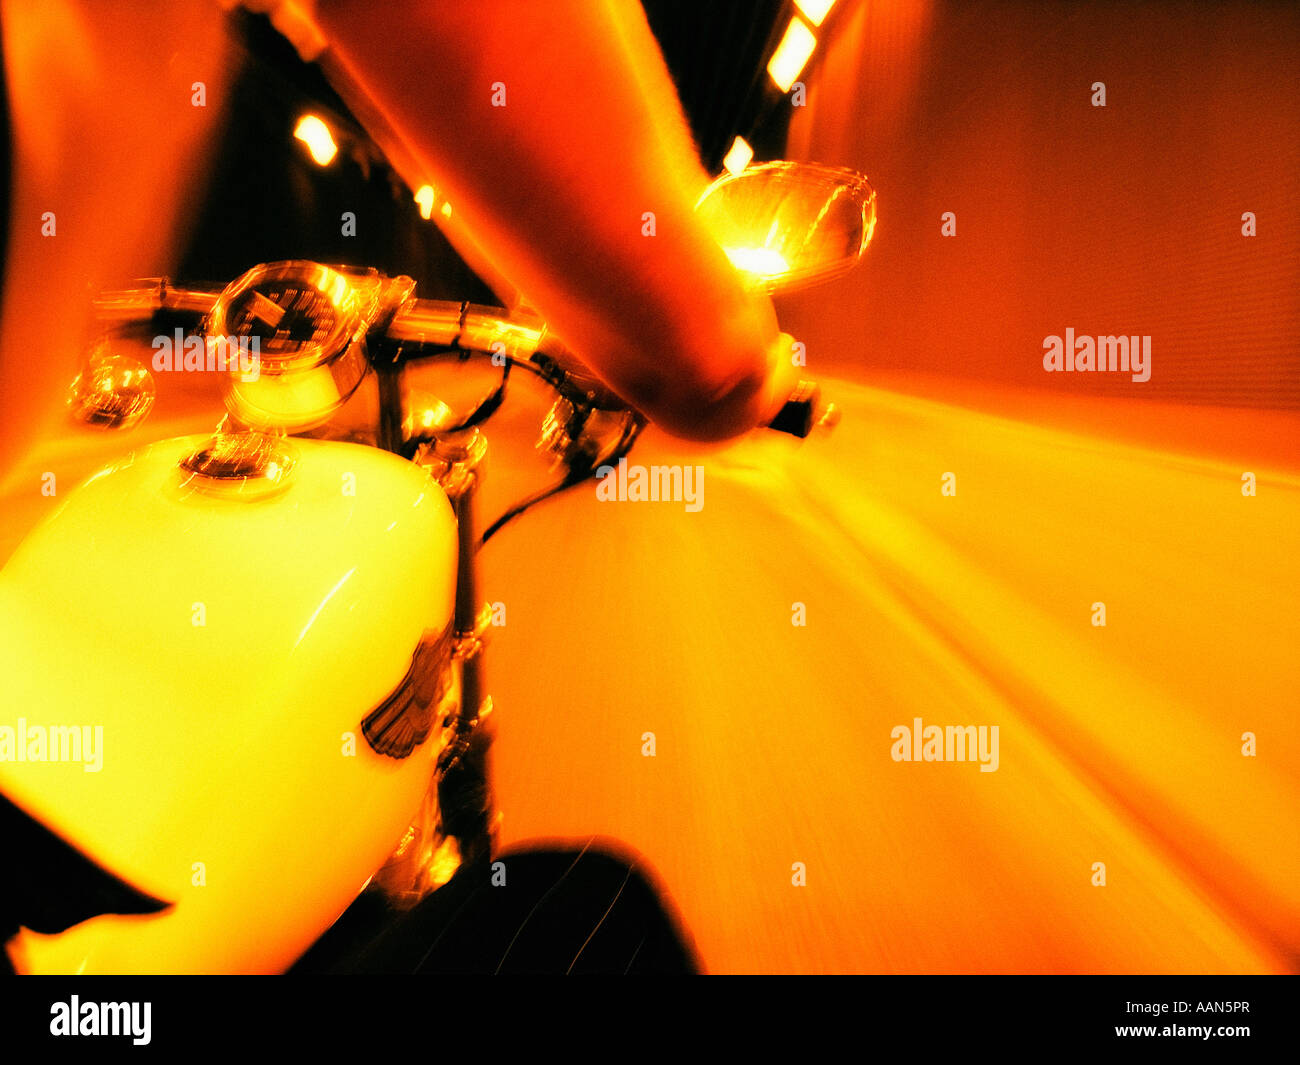 Riding a motorbike at night under artificial light - Stock Image